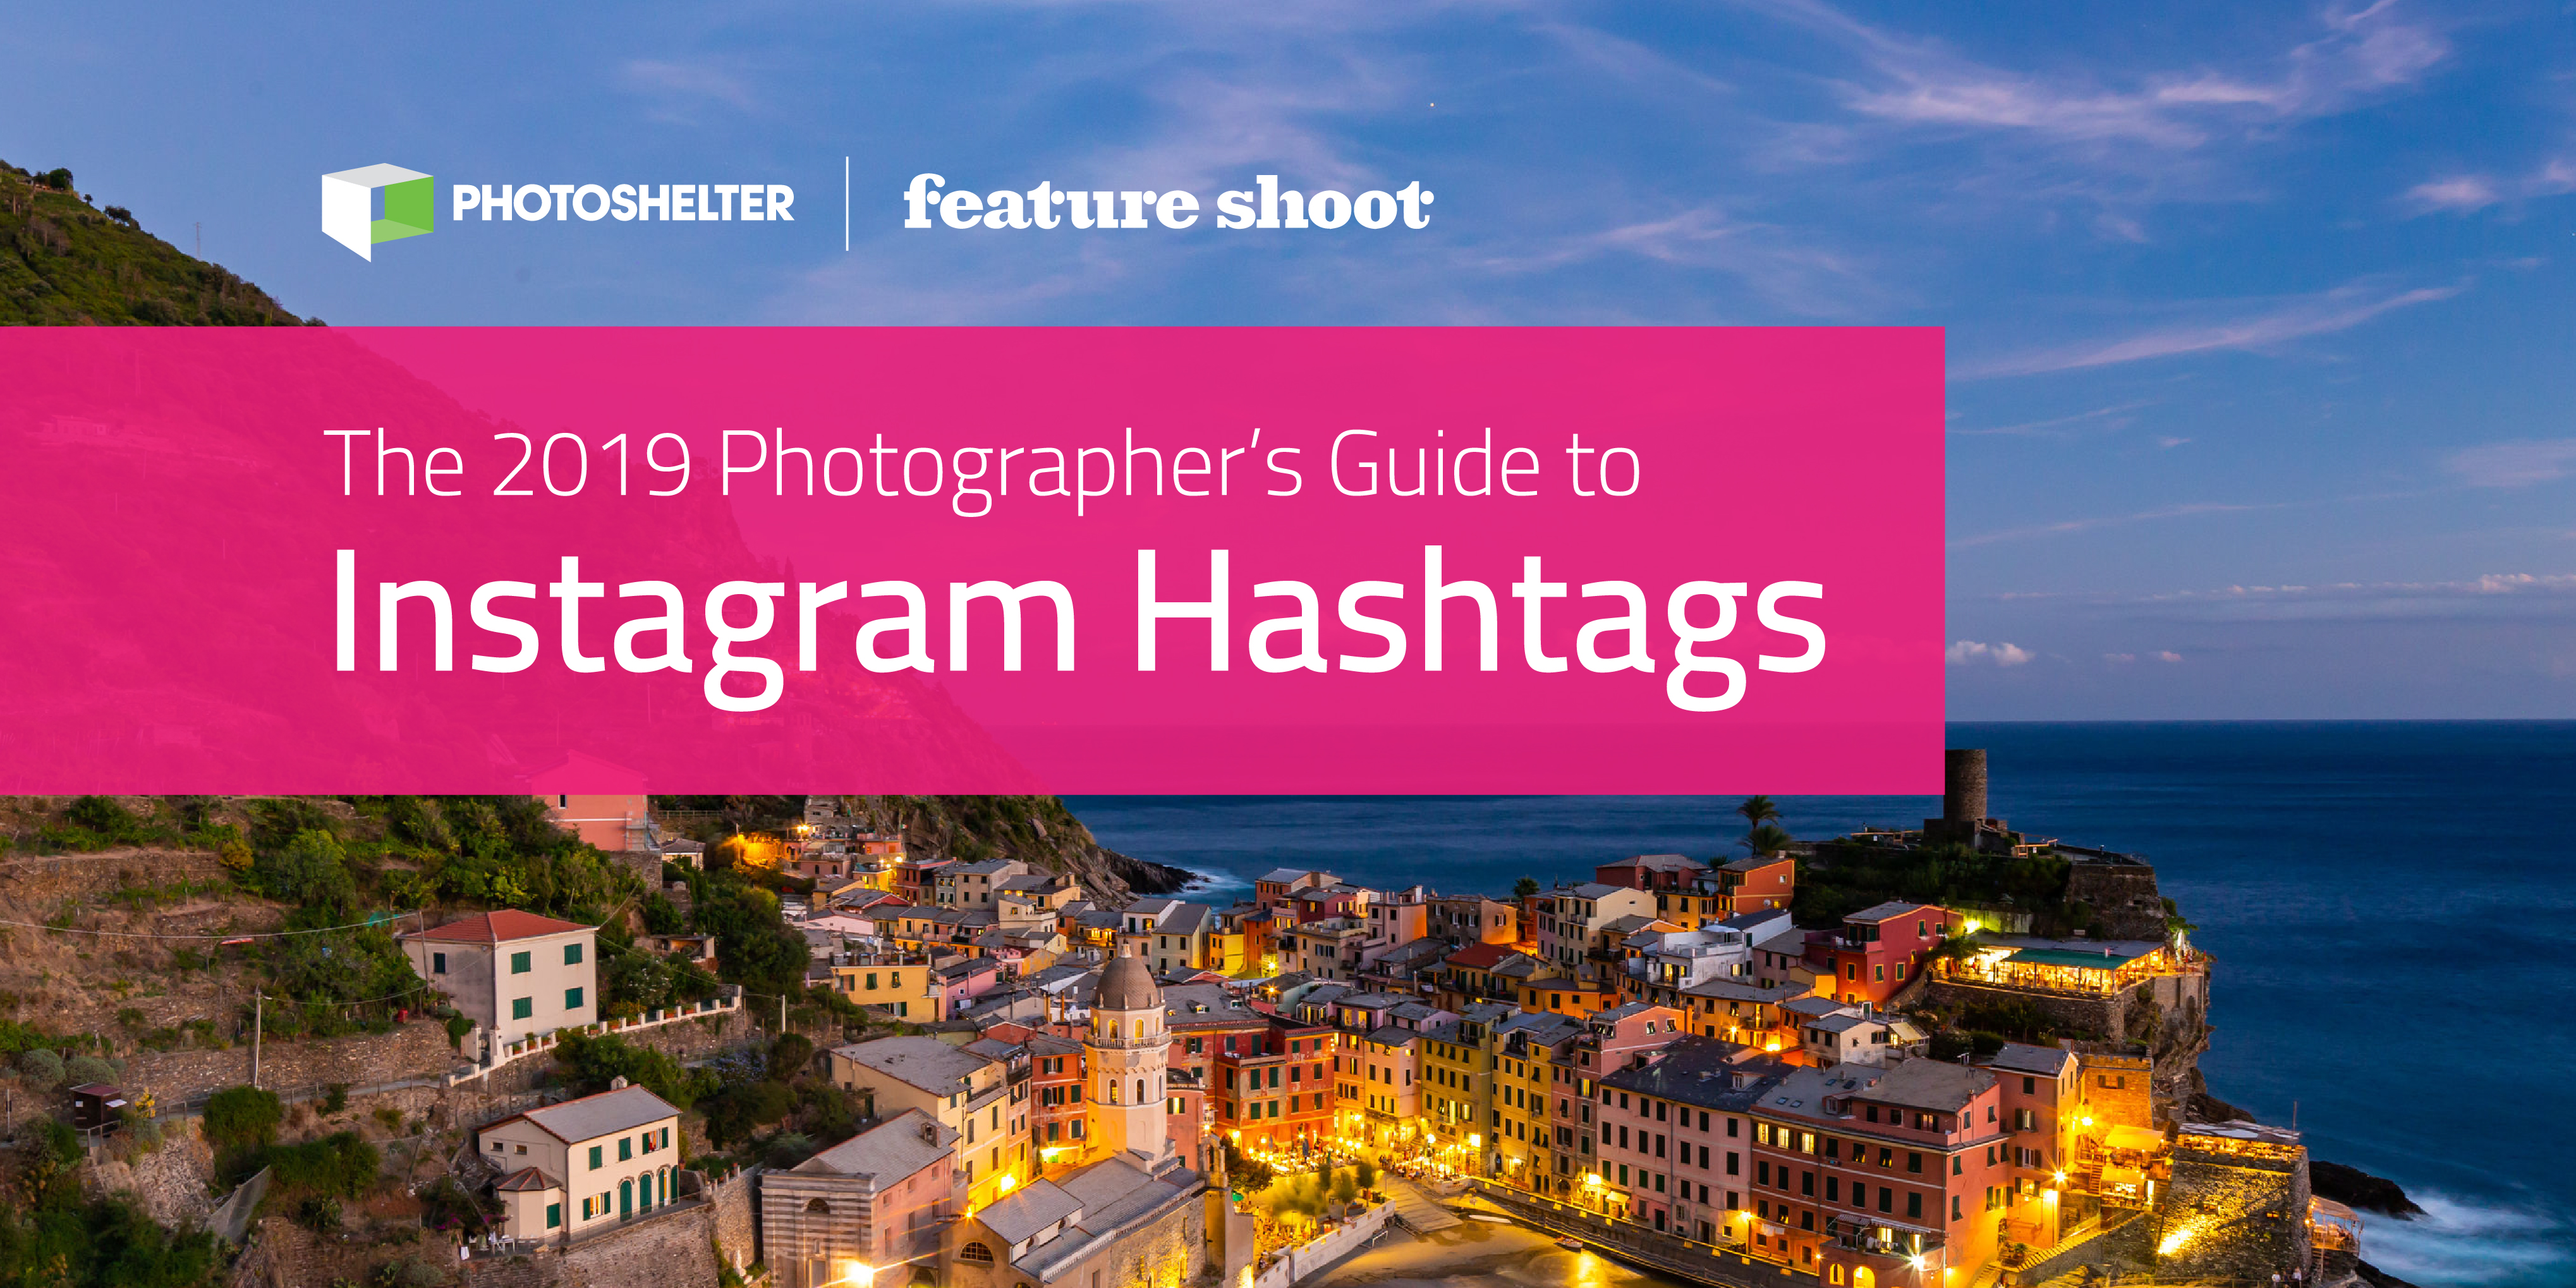 The 2019 Photographer's Guide to Instagram Hashtags